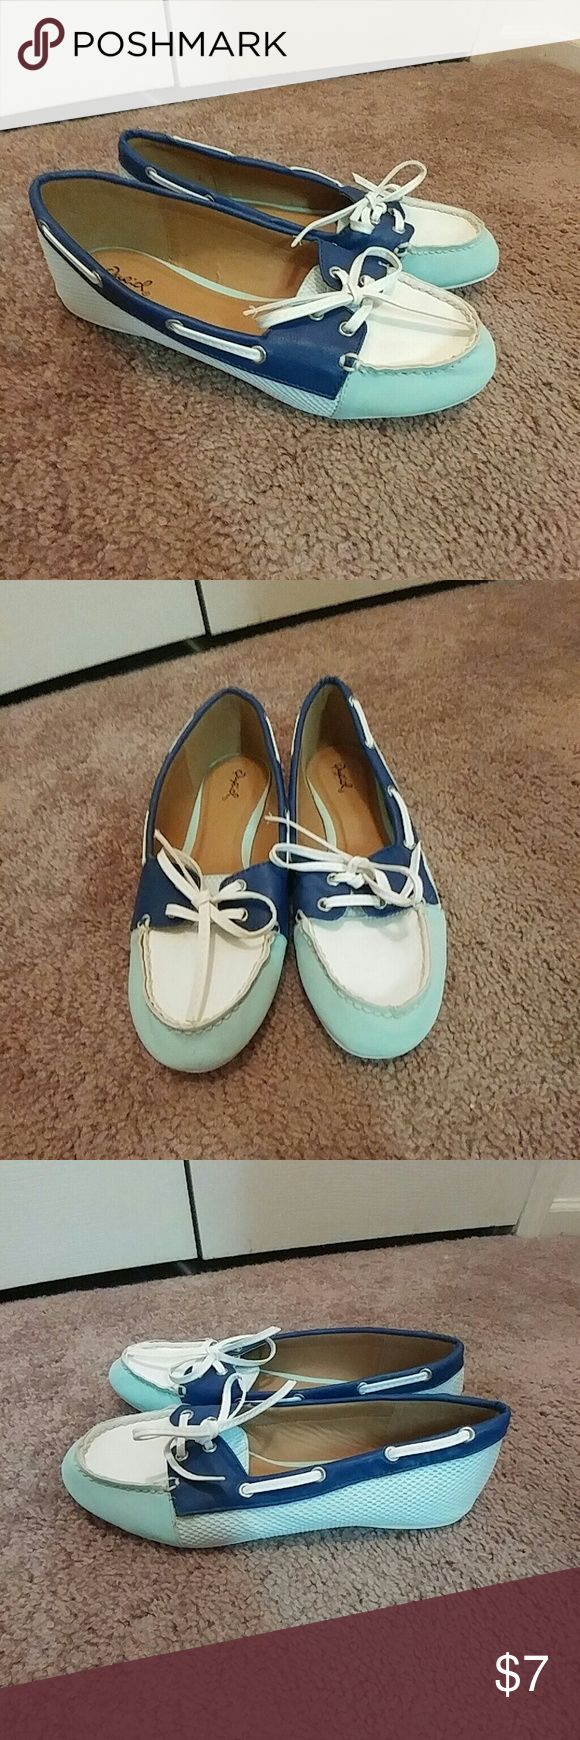 🎉SALE🎉 NWOT Shoes Never worn! Adorable Sperry style shoes (these are not Sperrys)  🎉🎉SALE🎉🎉 Buy 2 for $10 OR 3 for $13!!  Check out my closet and look for original post for details on this huge sale!! Qupid Shoes